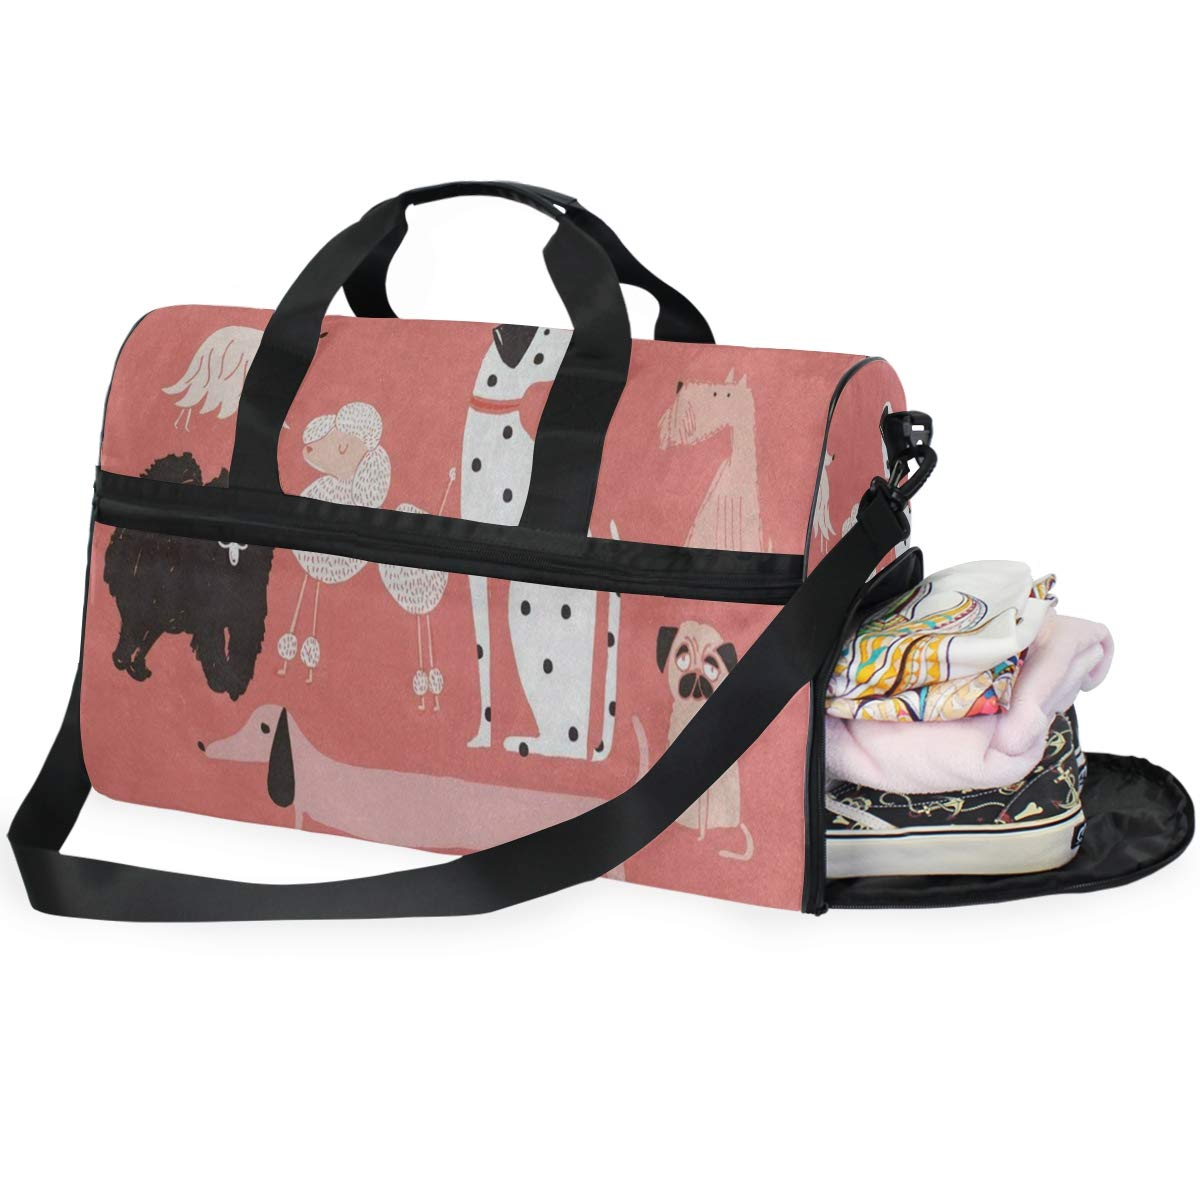 Cartoon Camel Palm Leave Large Canvas shoulder bag with Shoe Compartment Travel Tote Luggage Weekender Duffle Bag